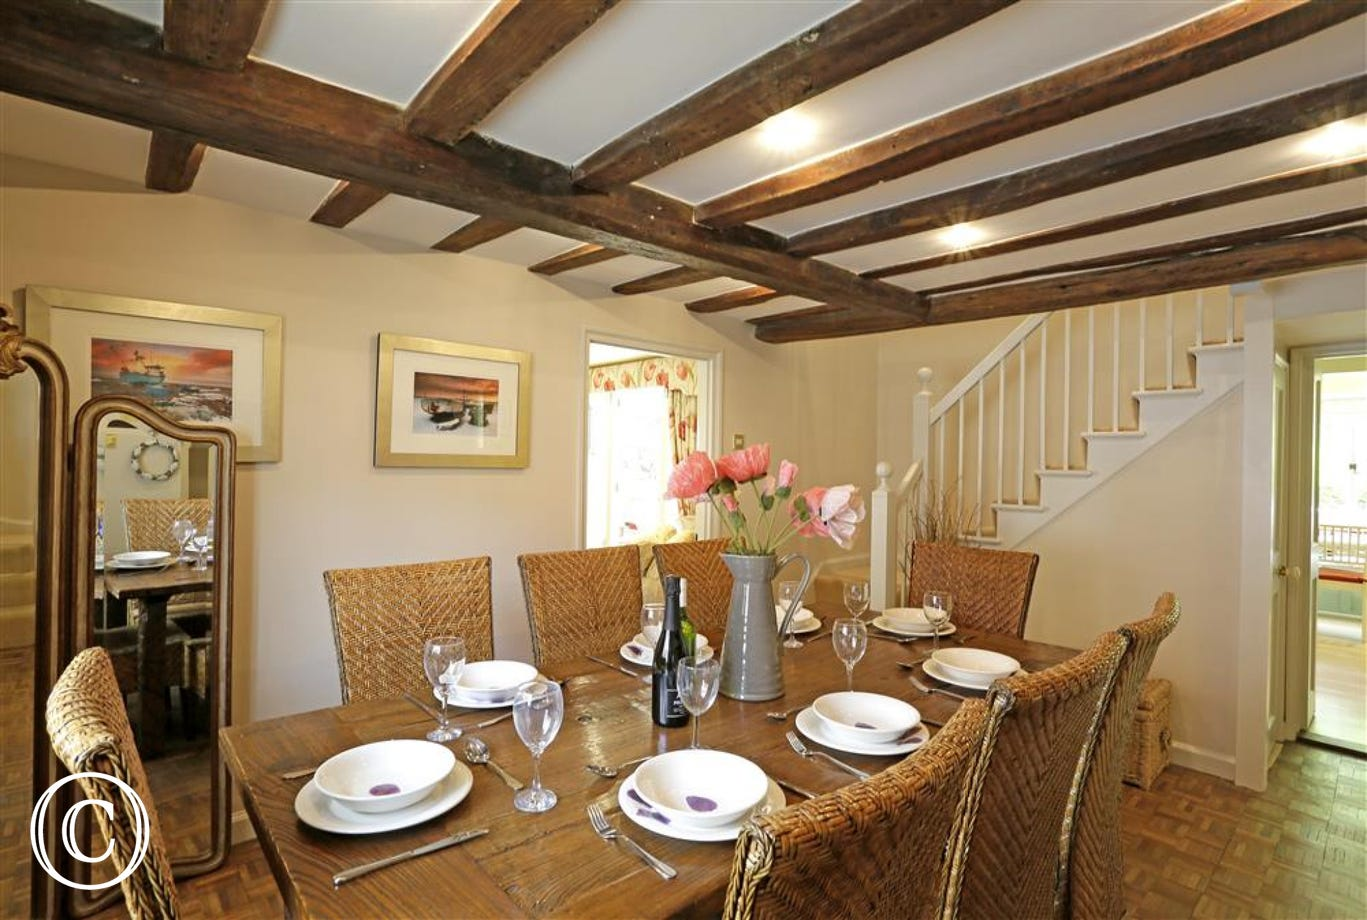 This dining area is centrally located for the kitchen and makes for a good place for you all to gather before you set off for the day.